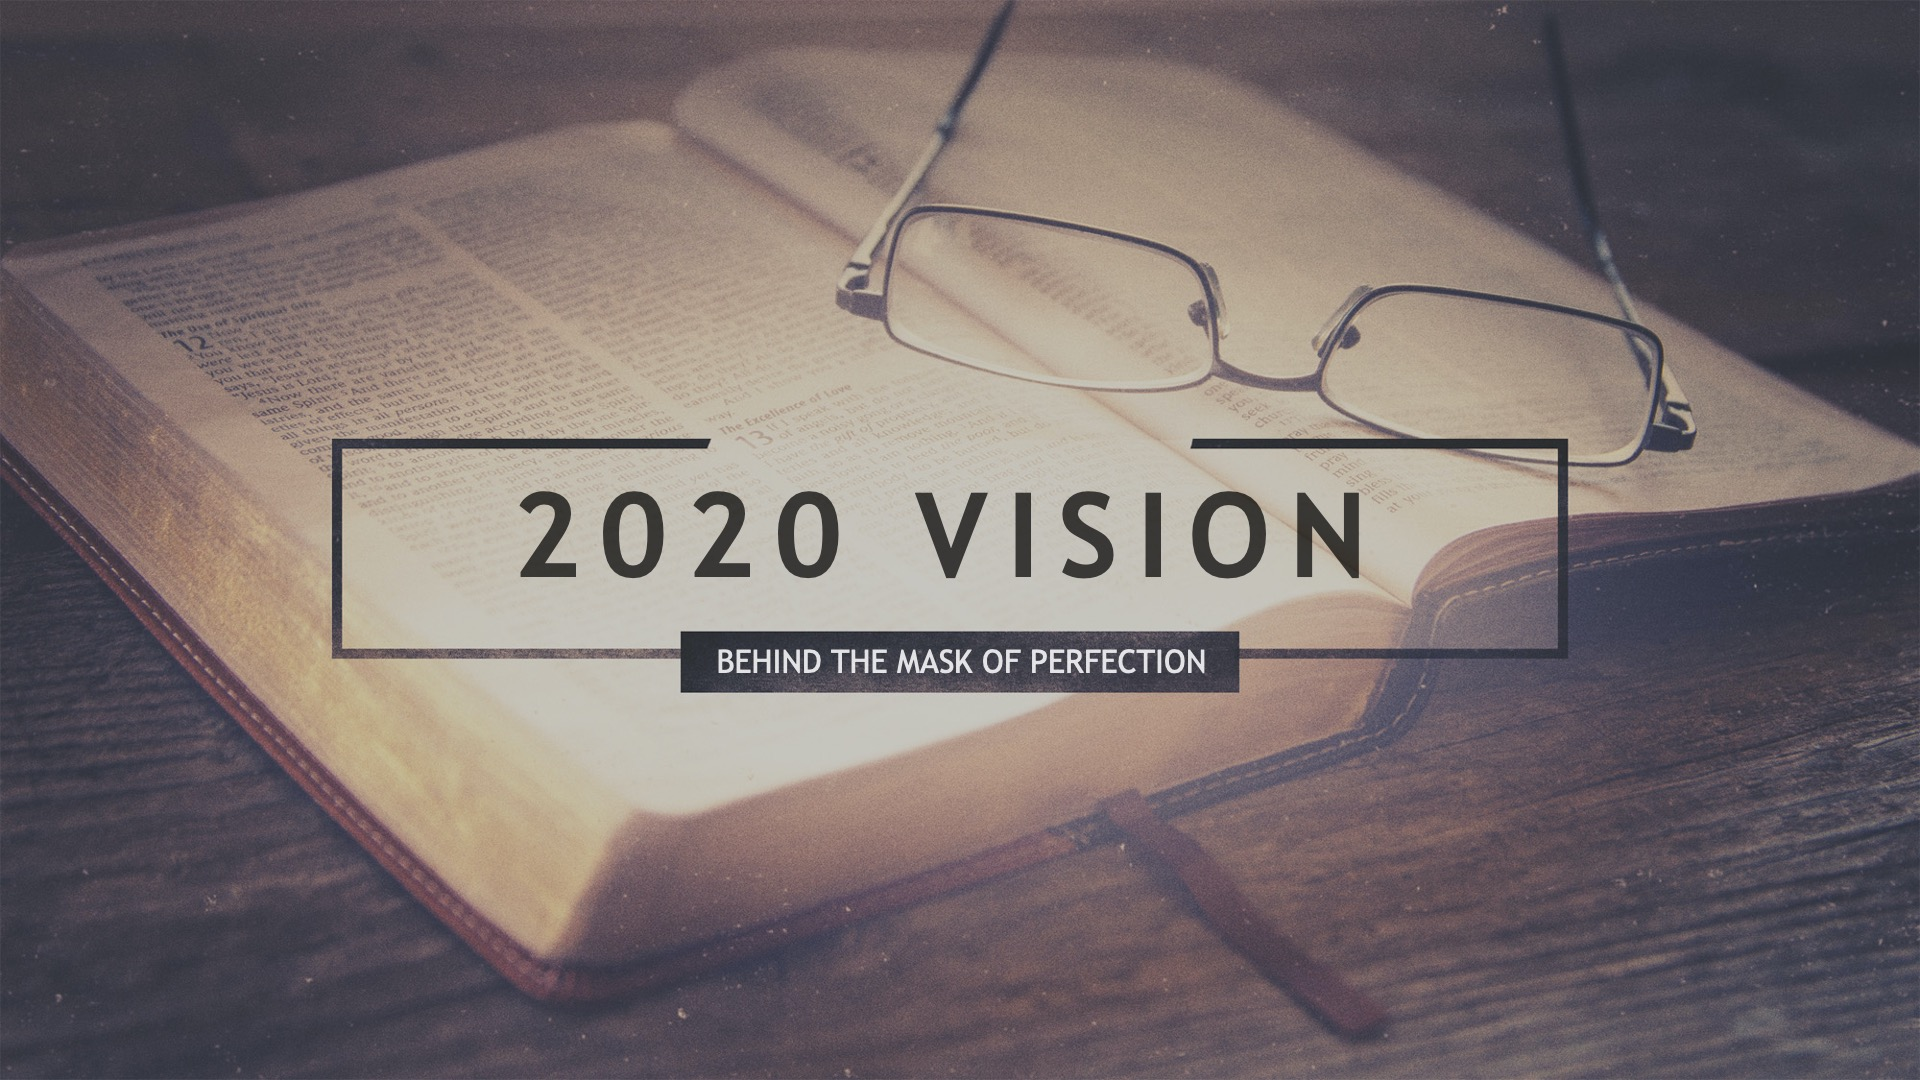 2020 Vision Behind the Mask of Perfection